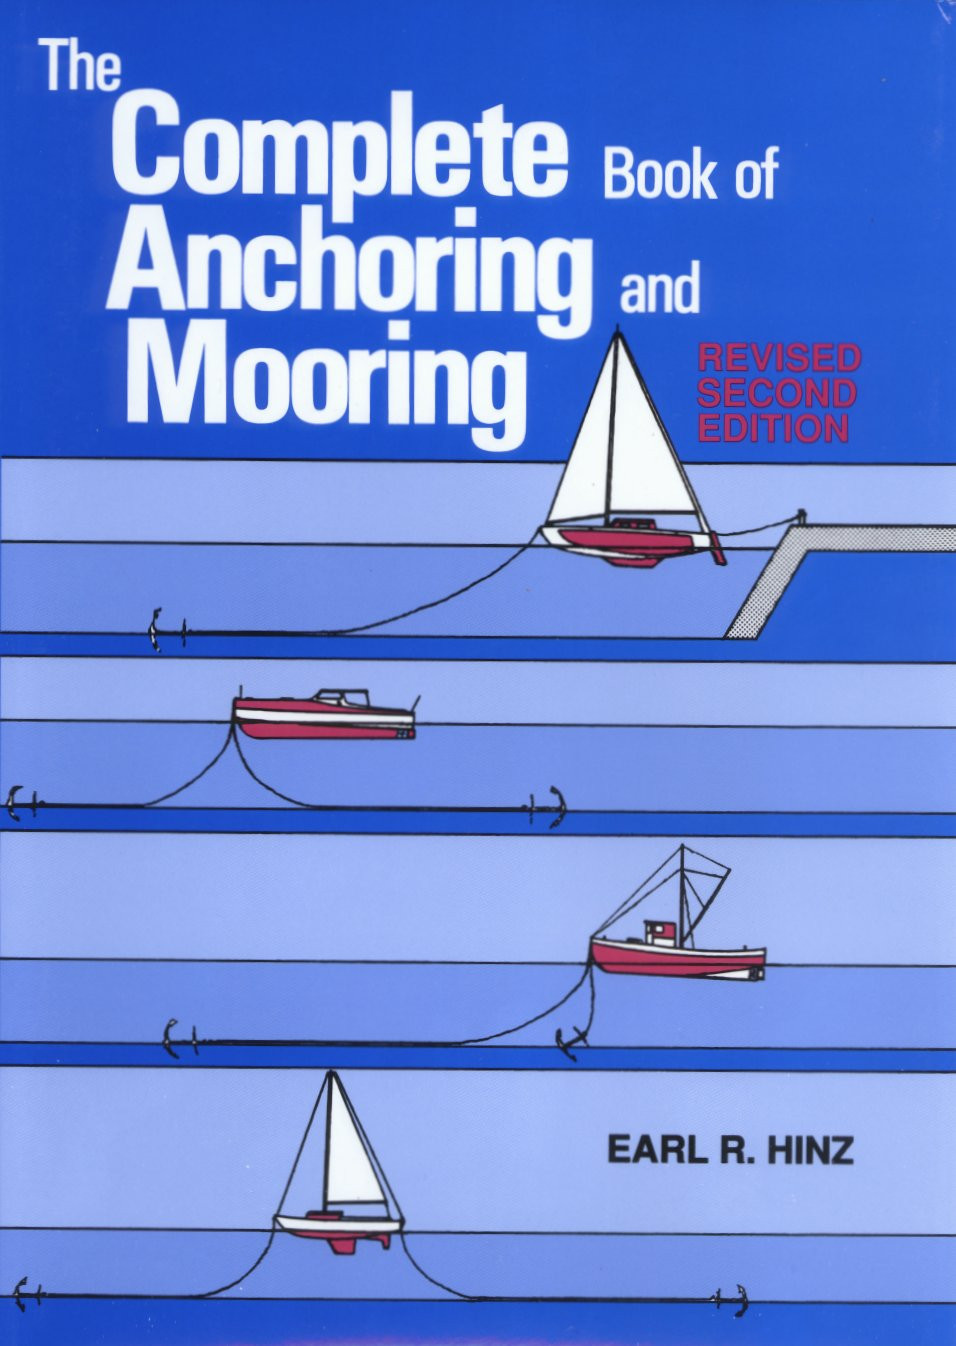 The Complete Book of Anchoring, Mooring, Rev. 2nd Ed.